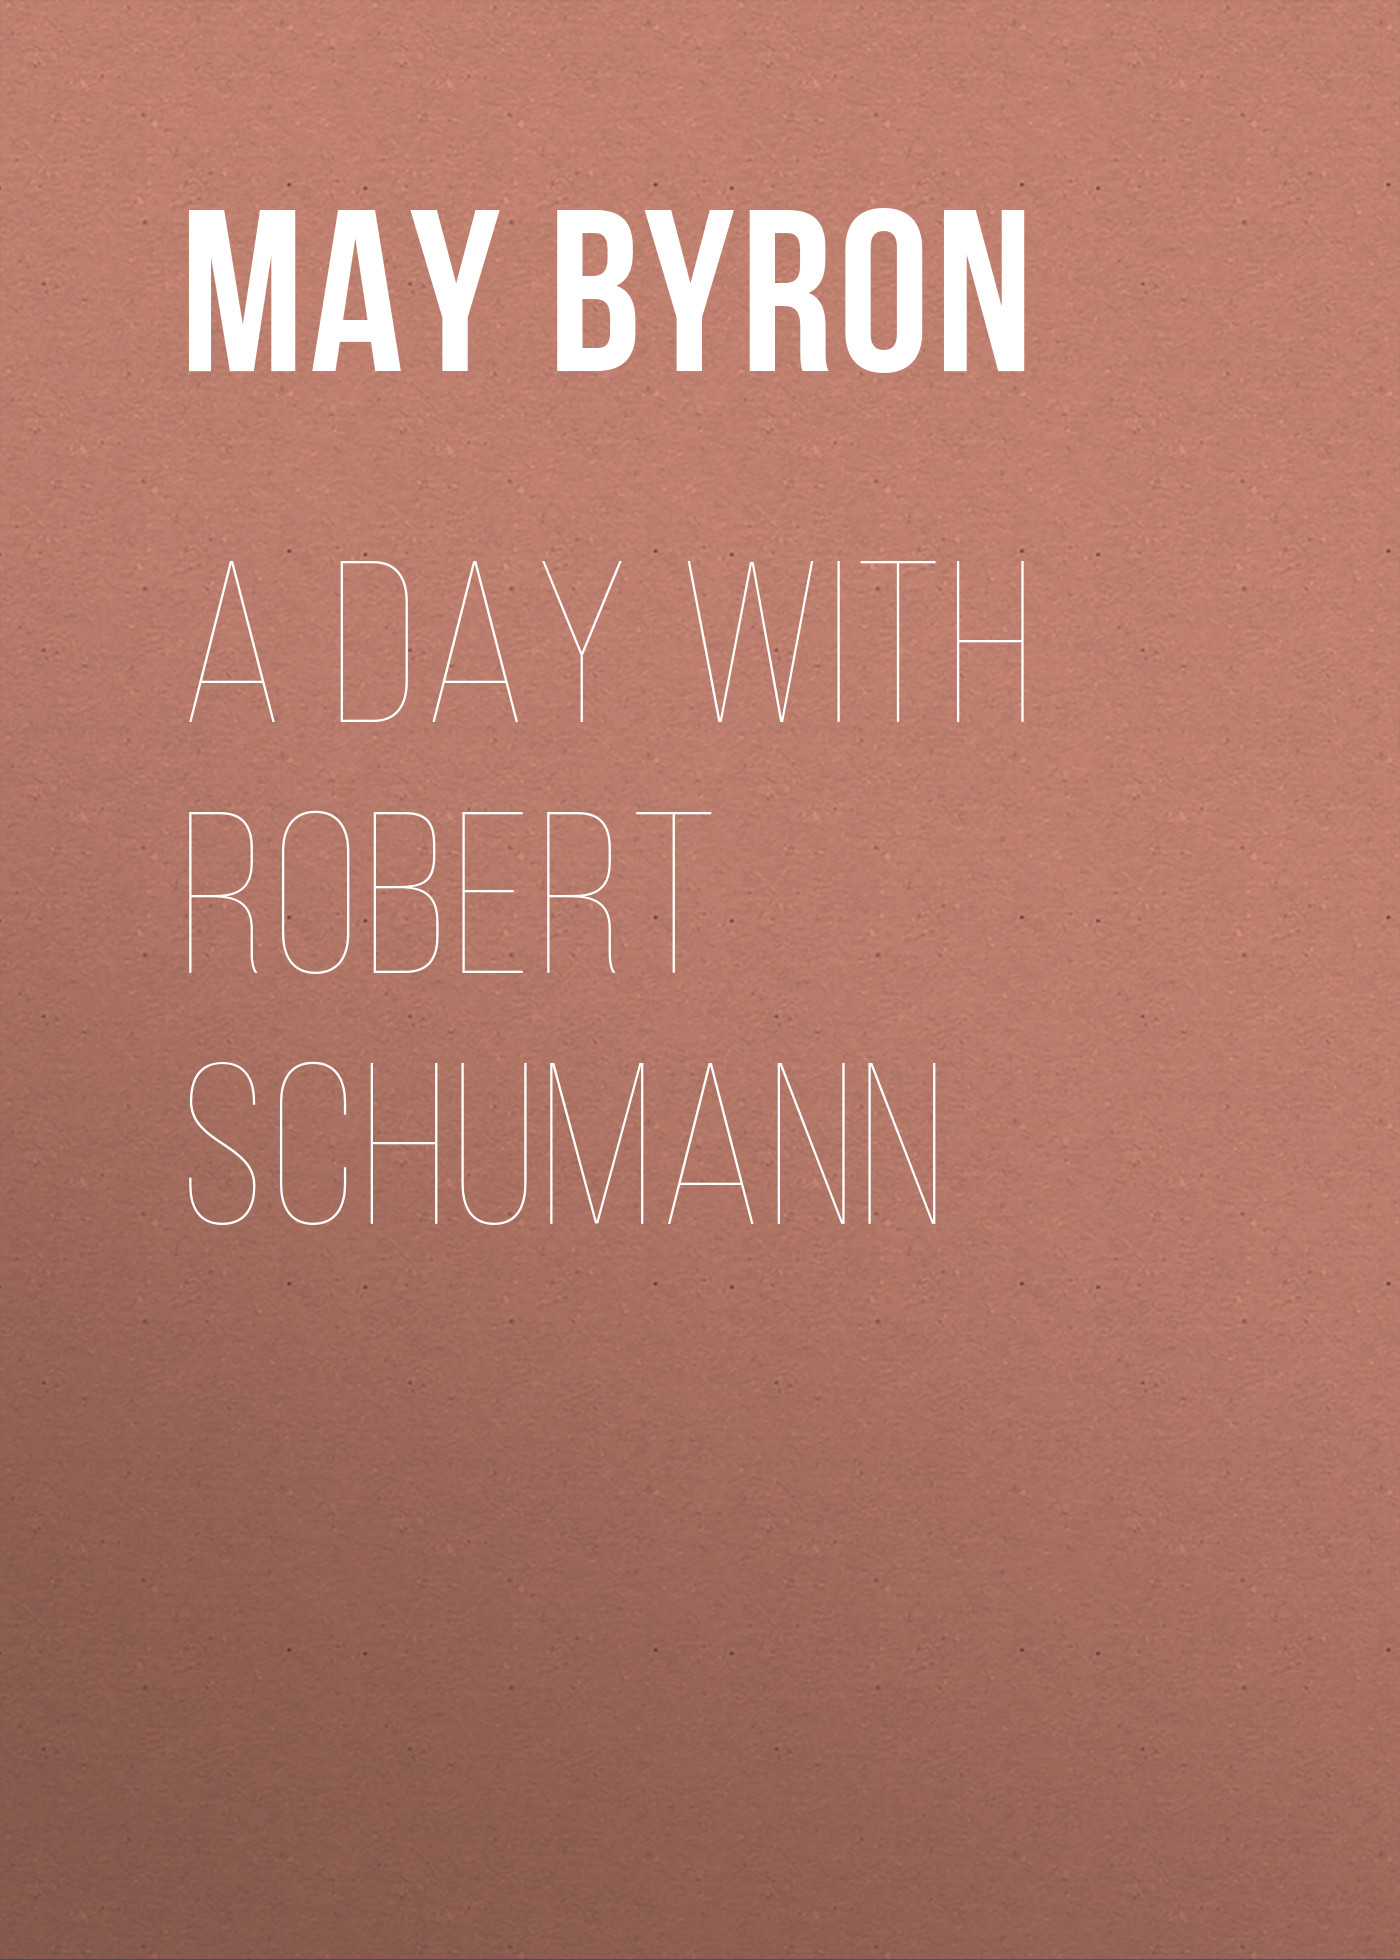 лучшая цена Byron May Clarissa Gillington A Day with Robert Schumann